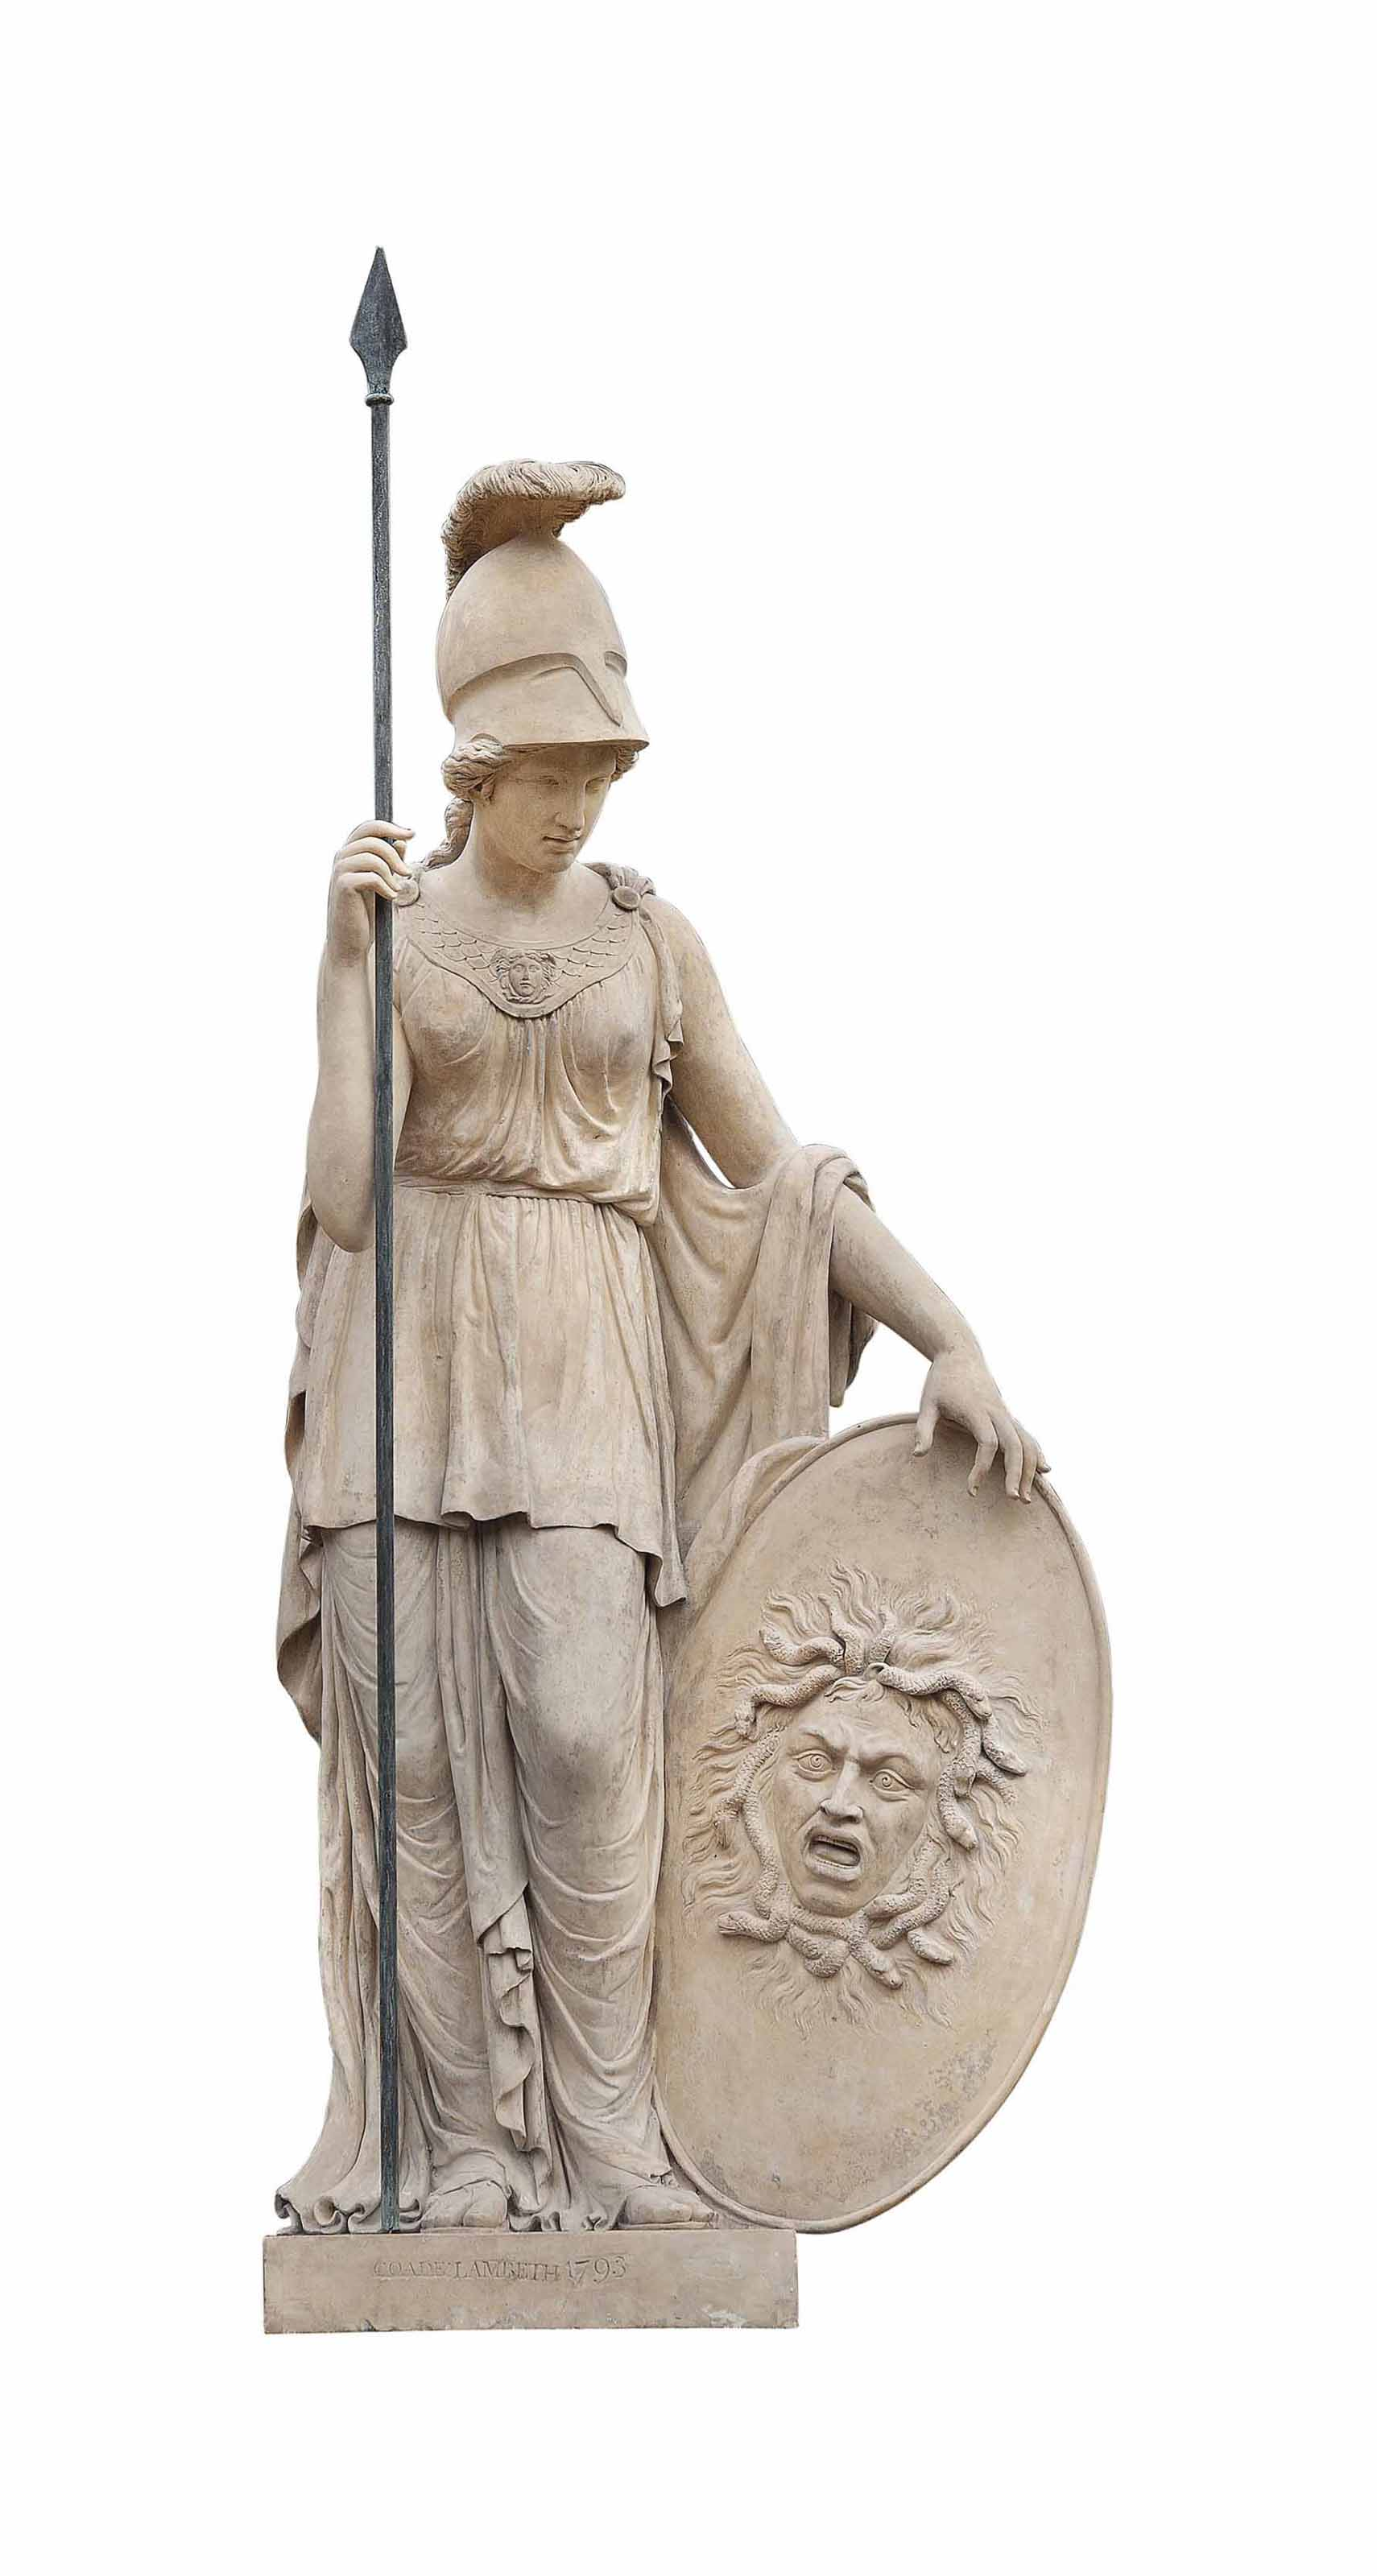 A GEORGE III ARTIFICIAL 'COADE' STONE MODEL OF MINERVA